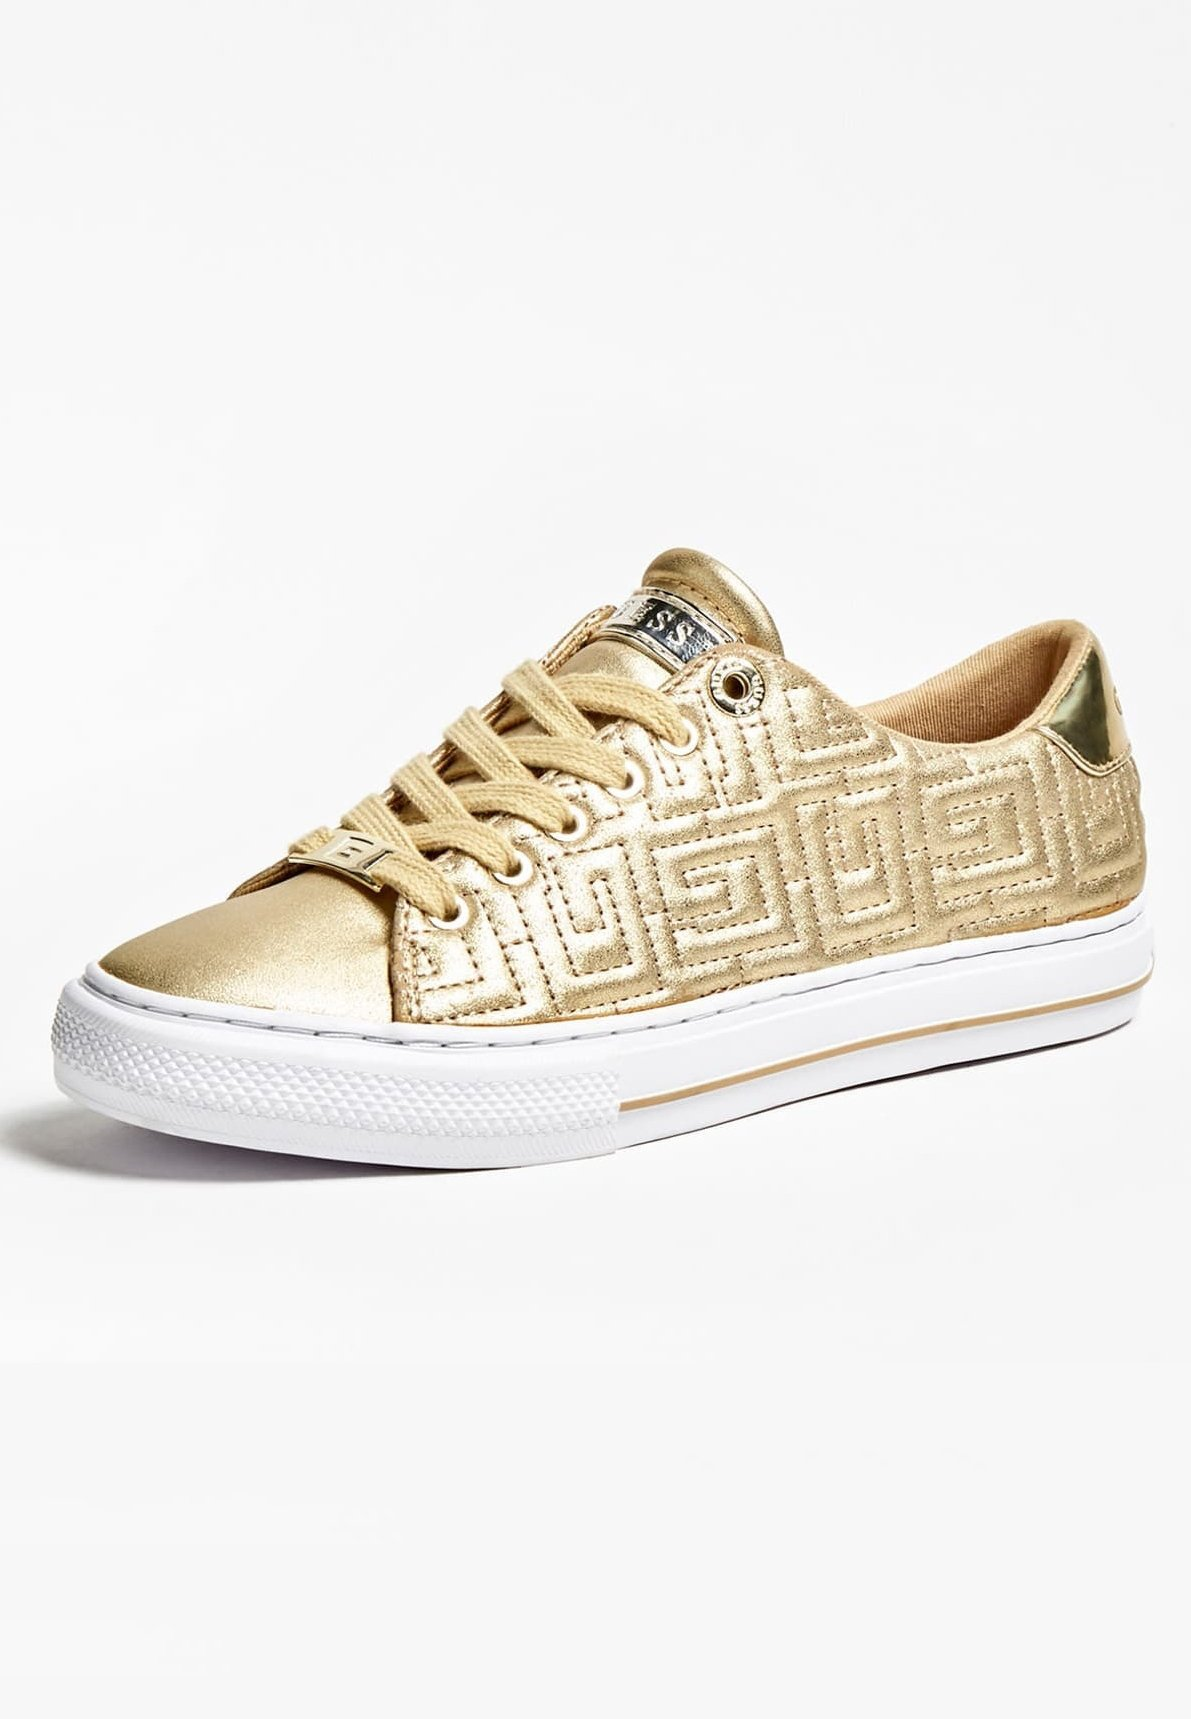 Guess Sneaker low goldenfarbe/gold